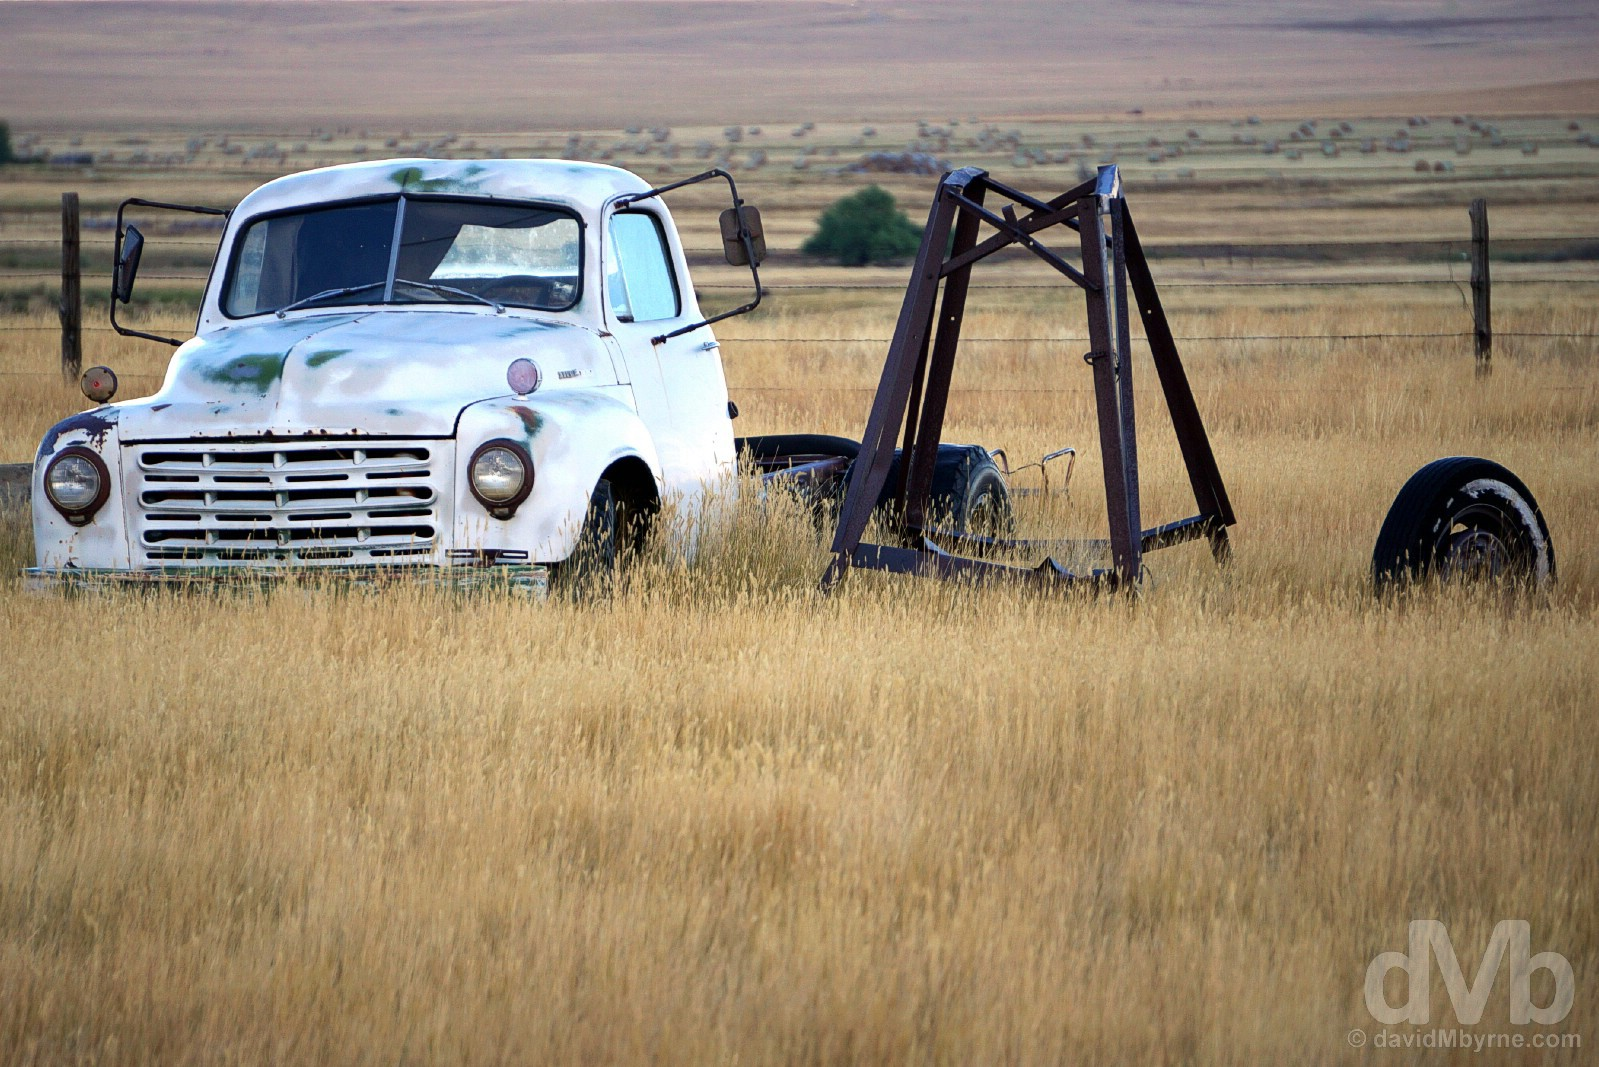 Abandoned by the side of US Route 30 in Albany County, Wyoming, USA. September 14, 2016.